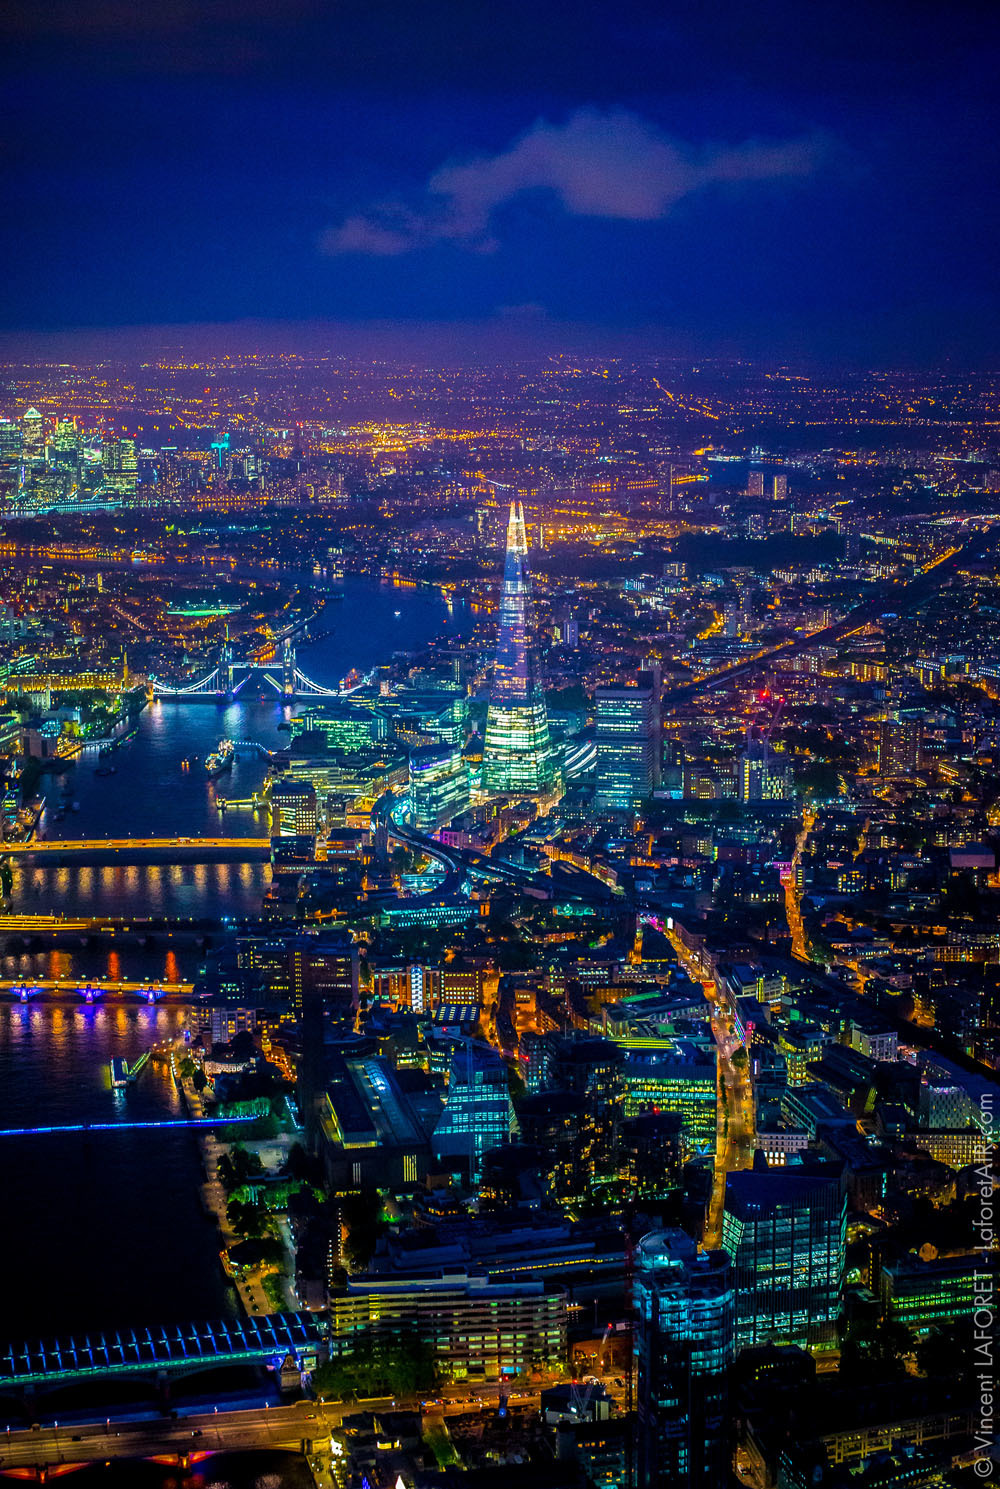 These aerial photos of London at night are simply beautiful